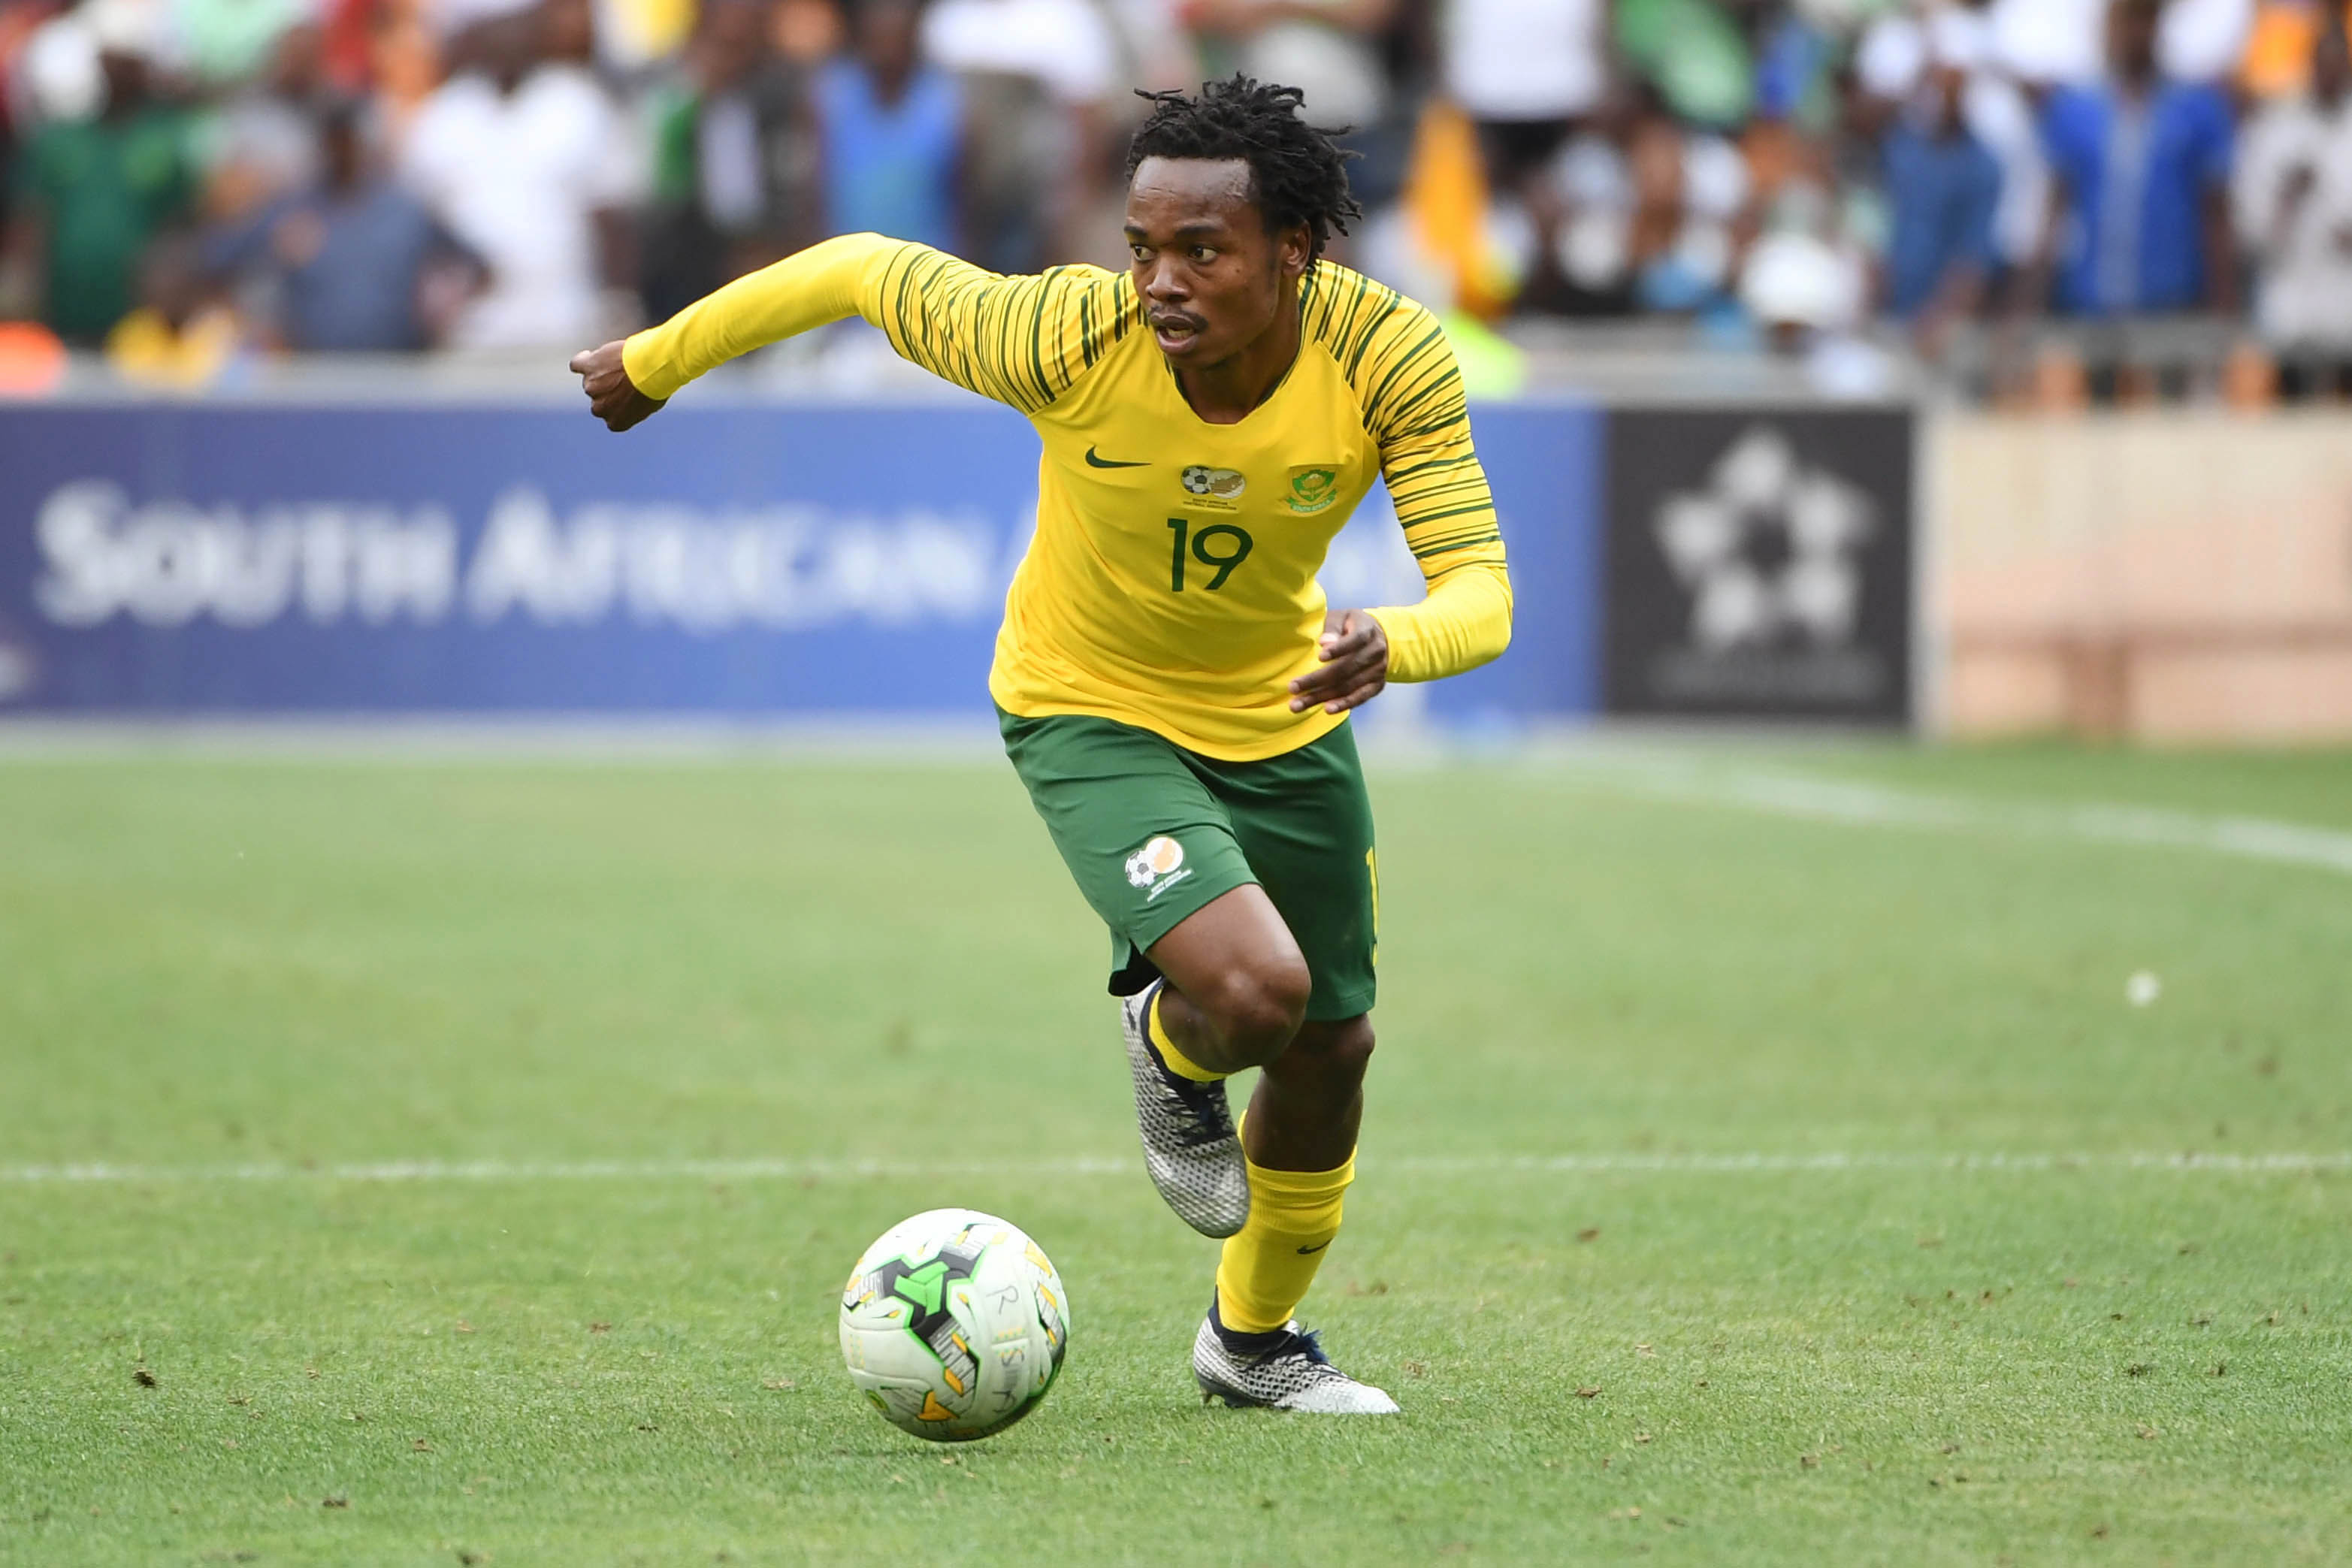 17 November 2018: Bafana Bafana's Percy Tau during the match between South Africa and Nigeria at the FNB Stadium. (Photograph by Lee Warren/Gallo Images)